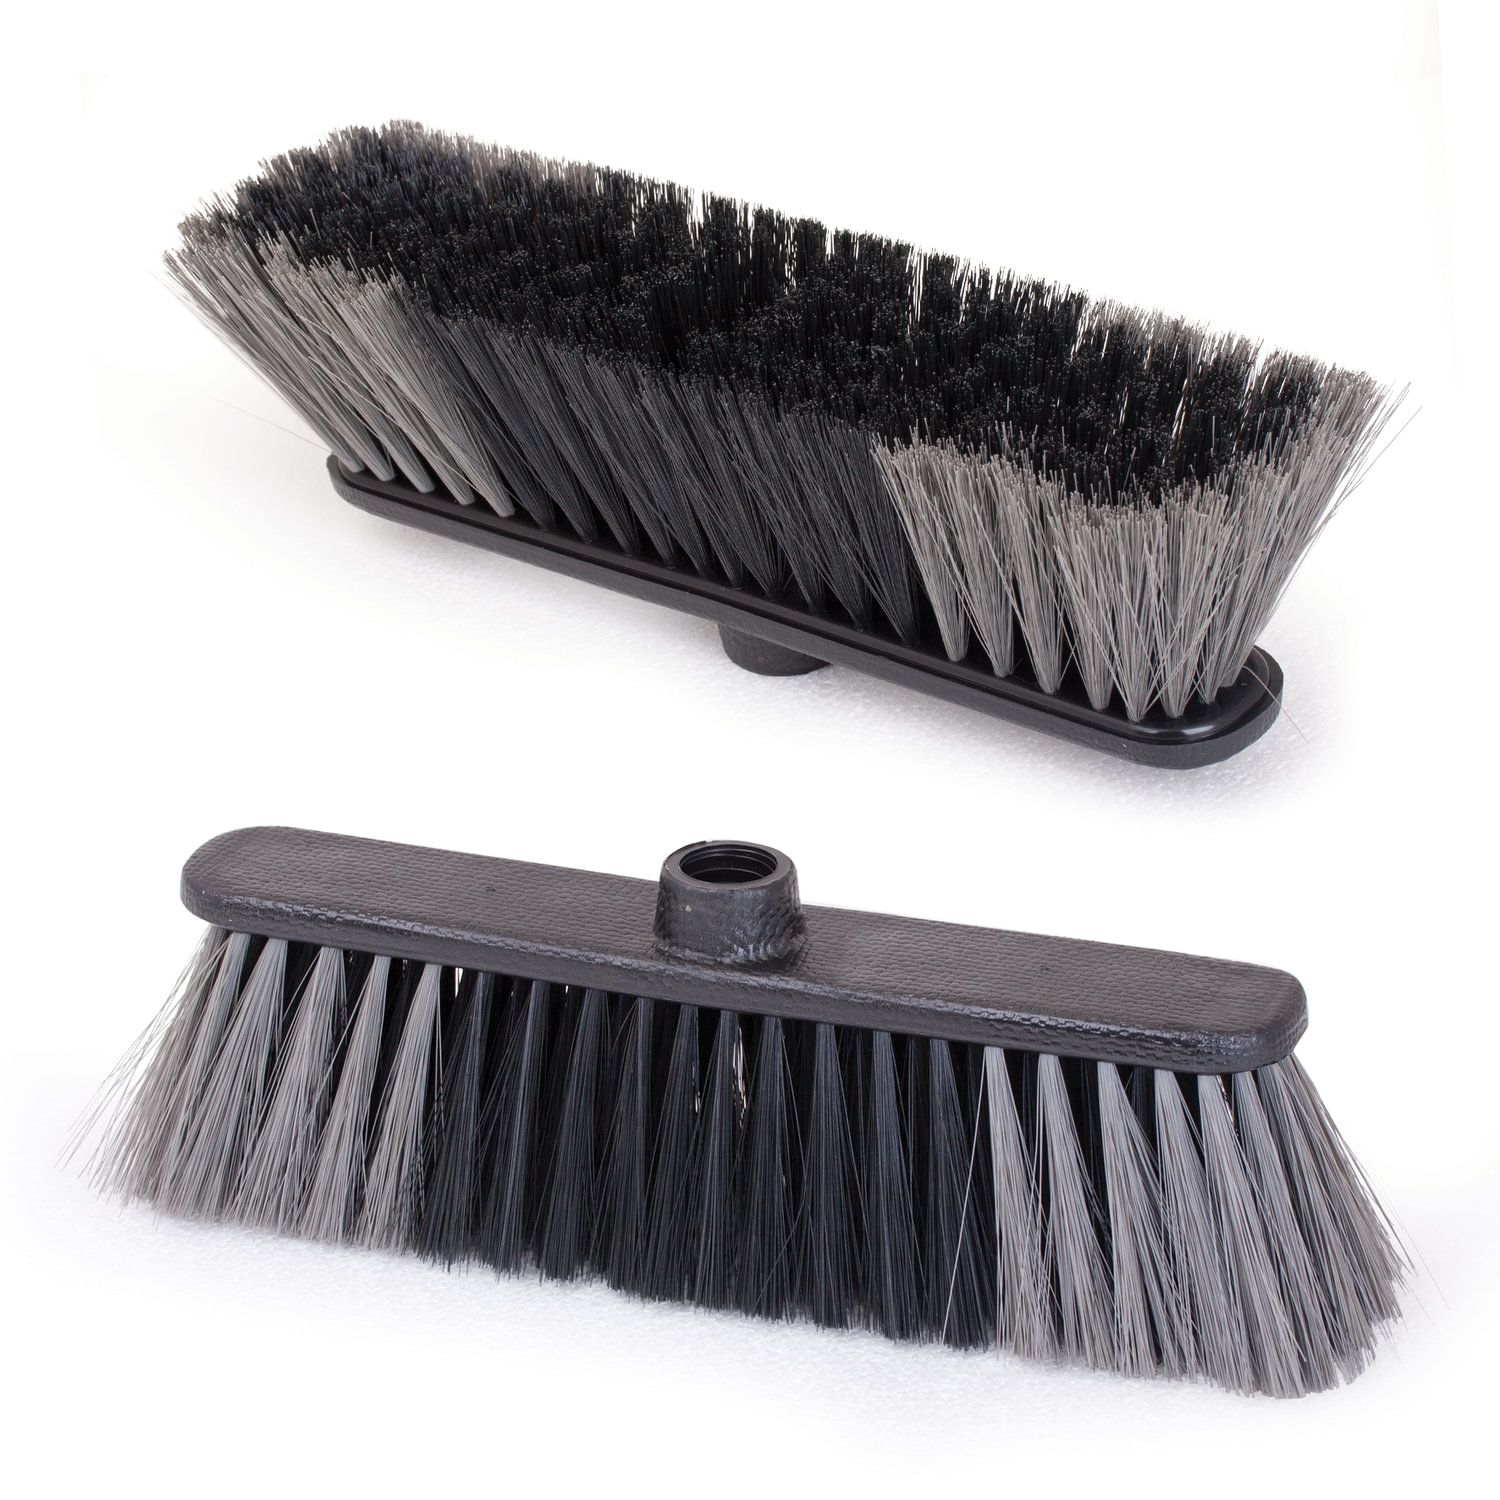 """IDEA / Brush """"Standard"""" for cleaning, width 27 cm, bristles 7 cm (two-color), plastic, Euro thread"""